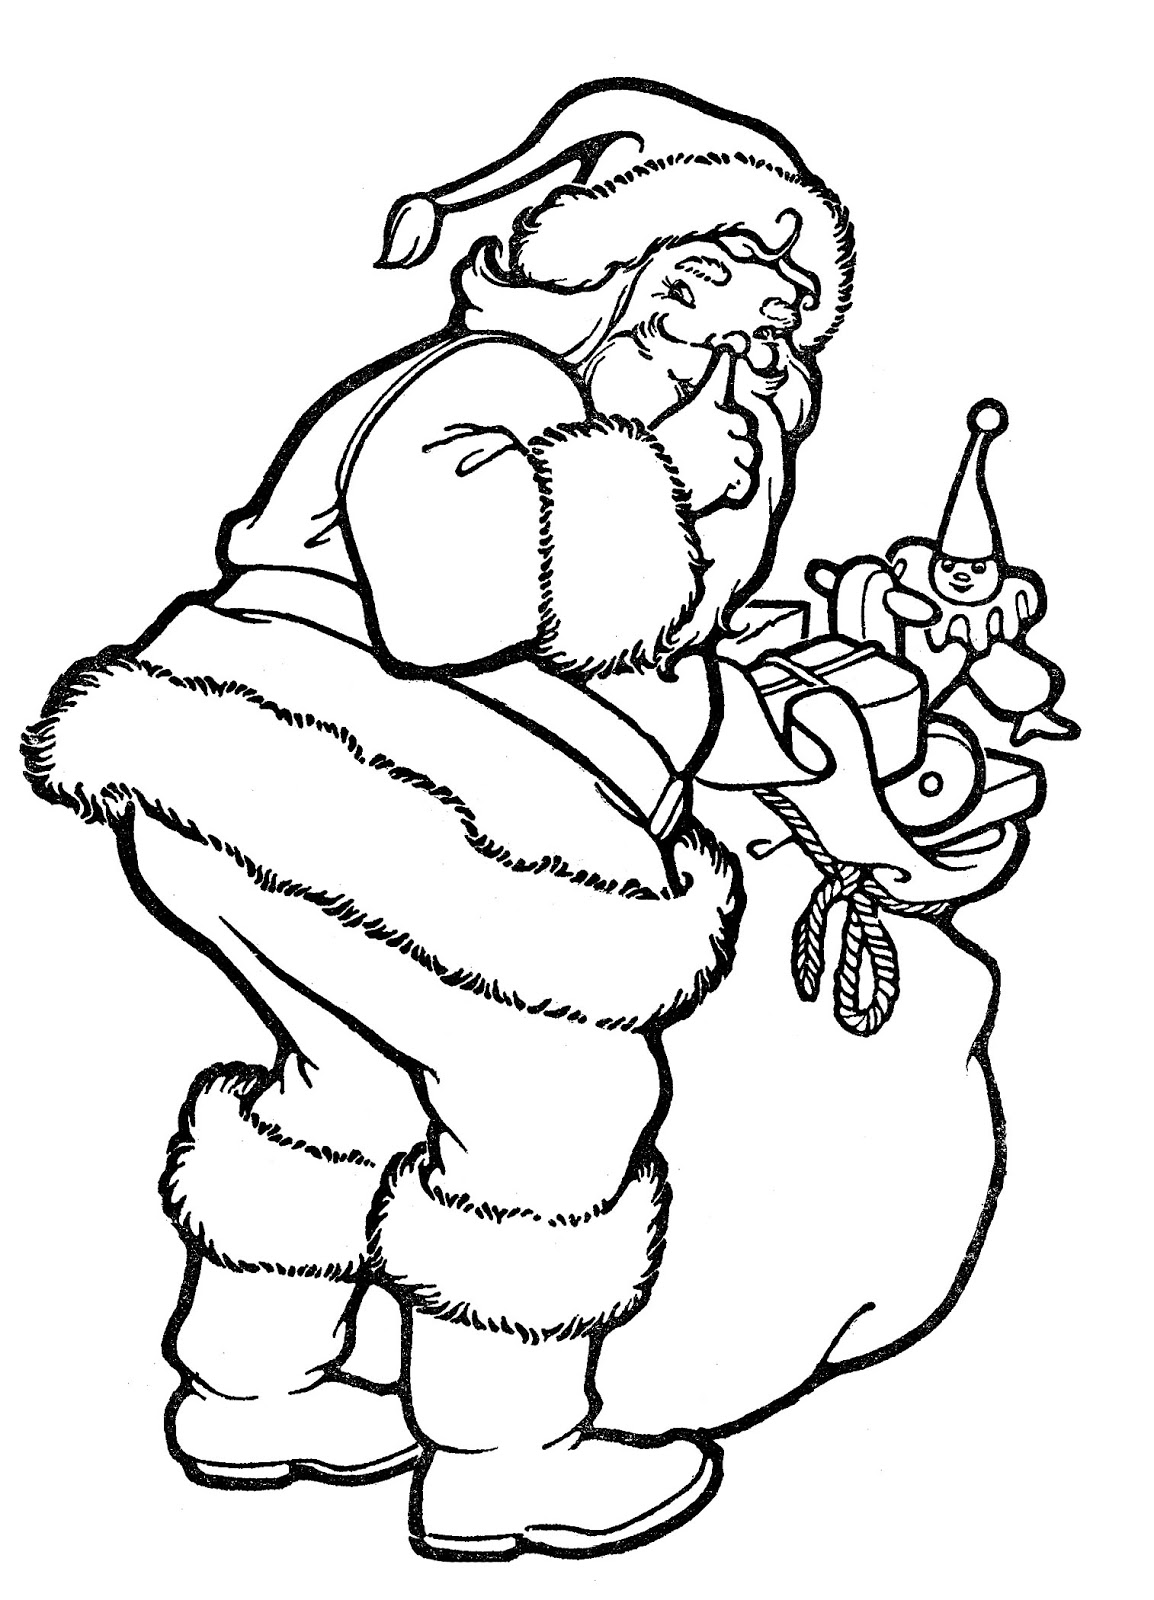 Line Art Images : Vintage christmas line art santa with toys the